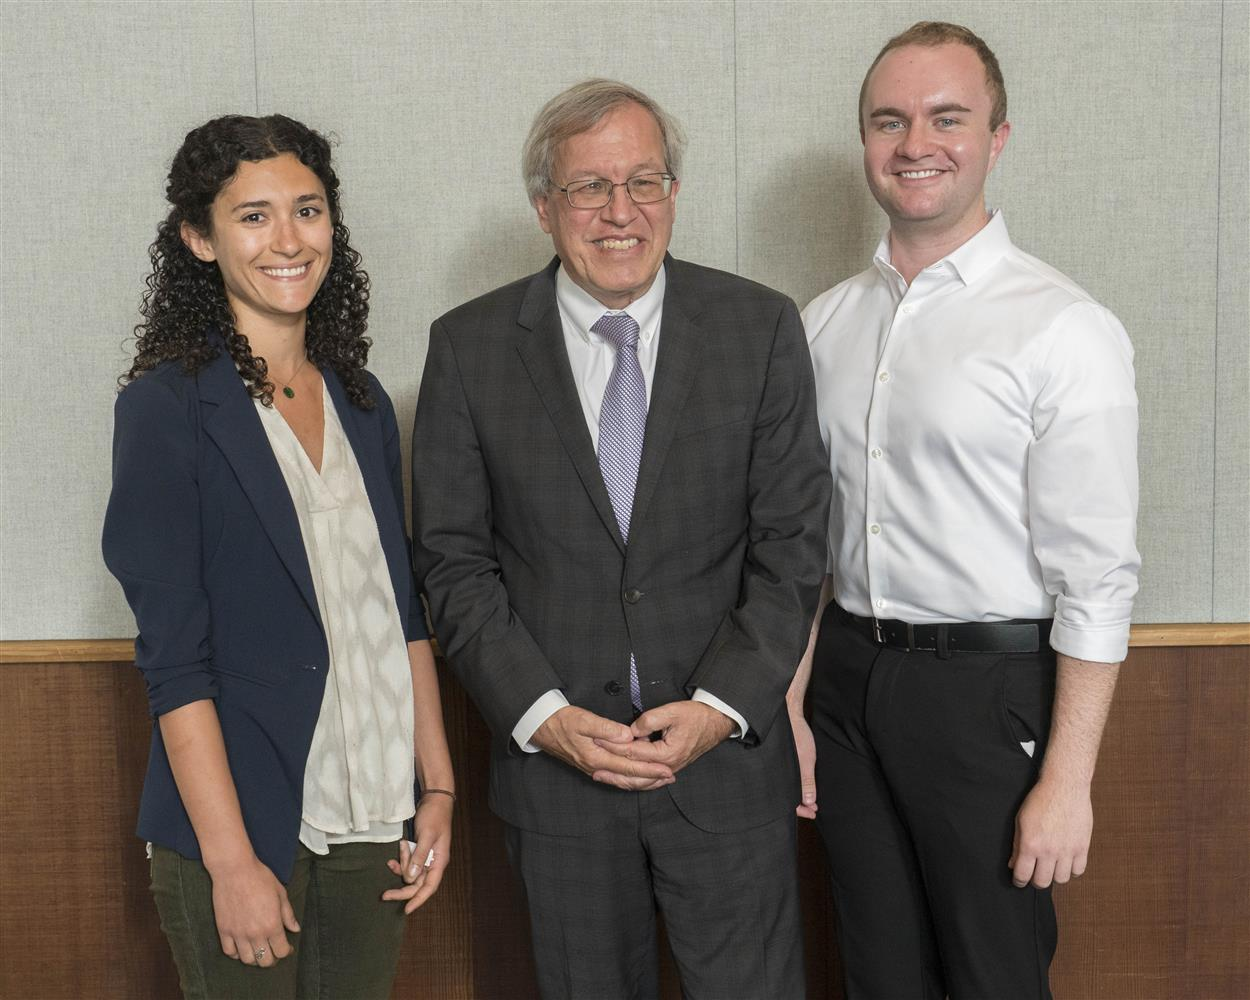 From left to right Emily M., Dean Chemerinsky, and Ansel C.